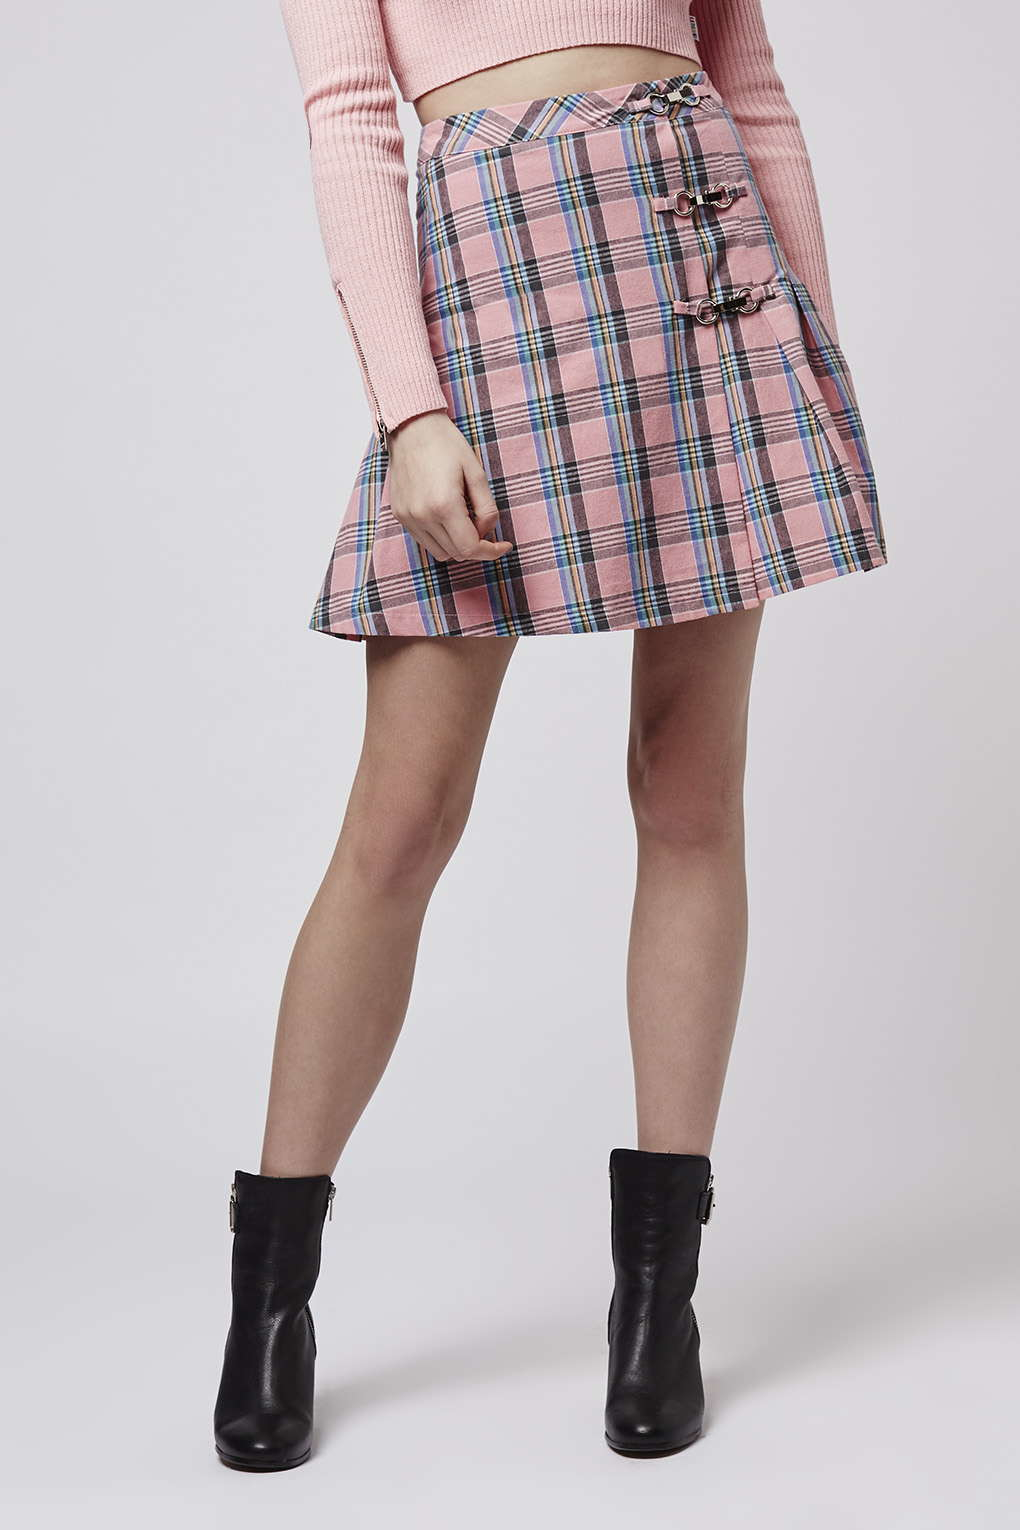 Lyst - Topshop Plaid Tennis Skirt By Unif in Pink